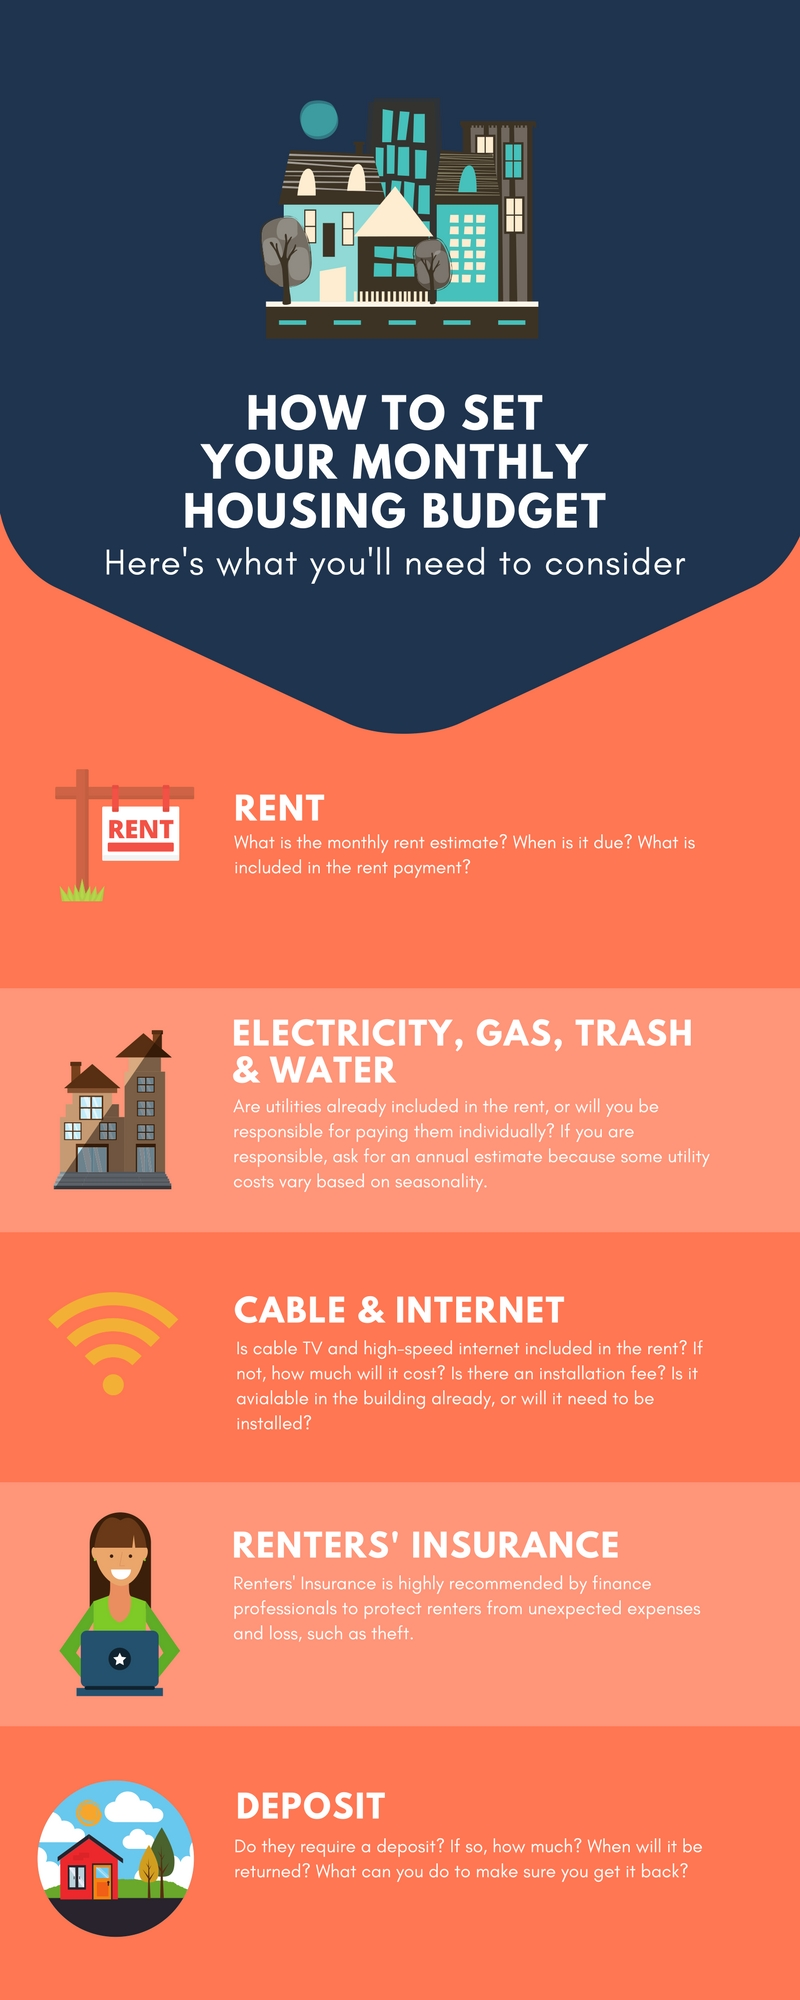 How to Set Housing Budget Infographic